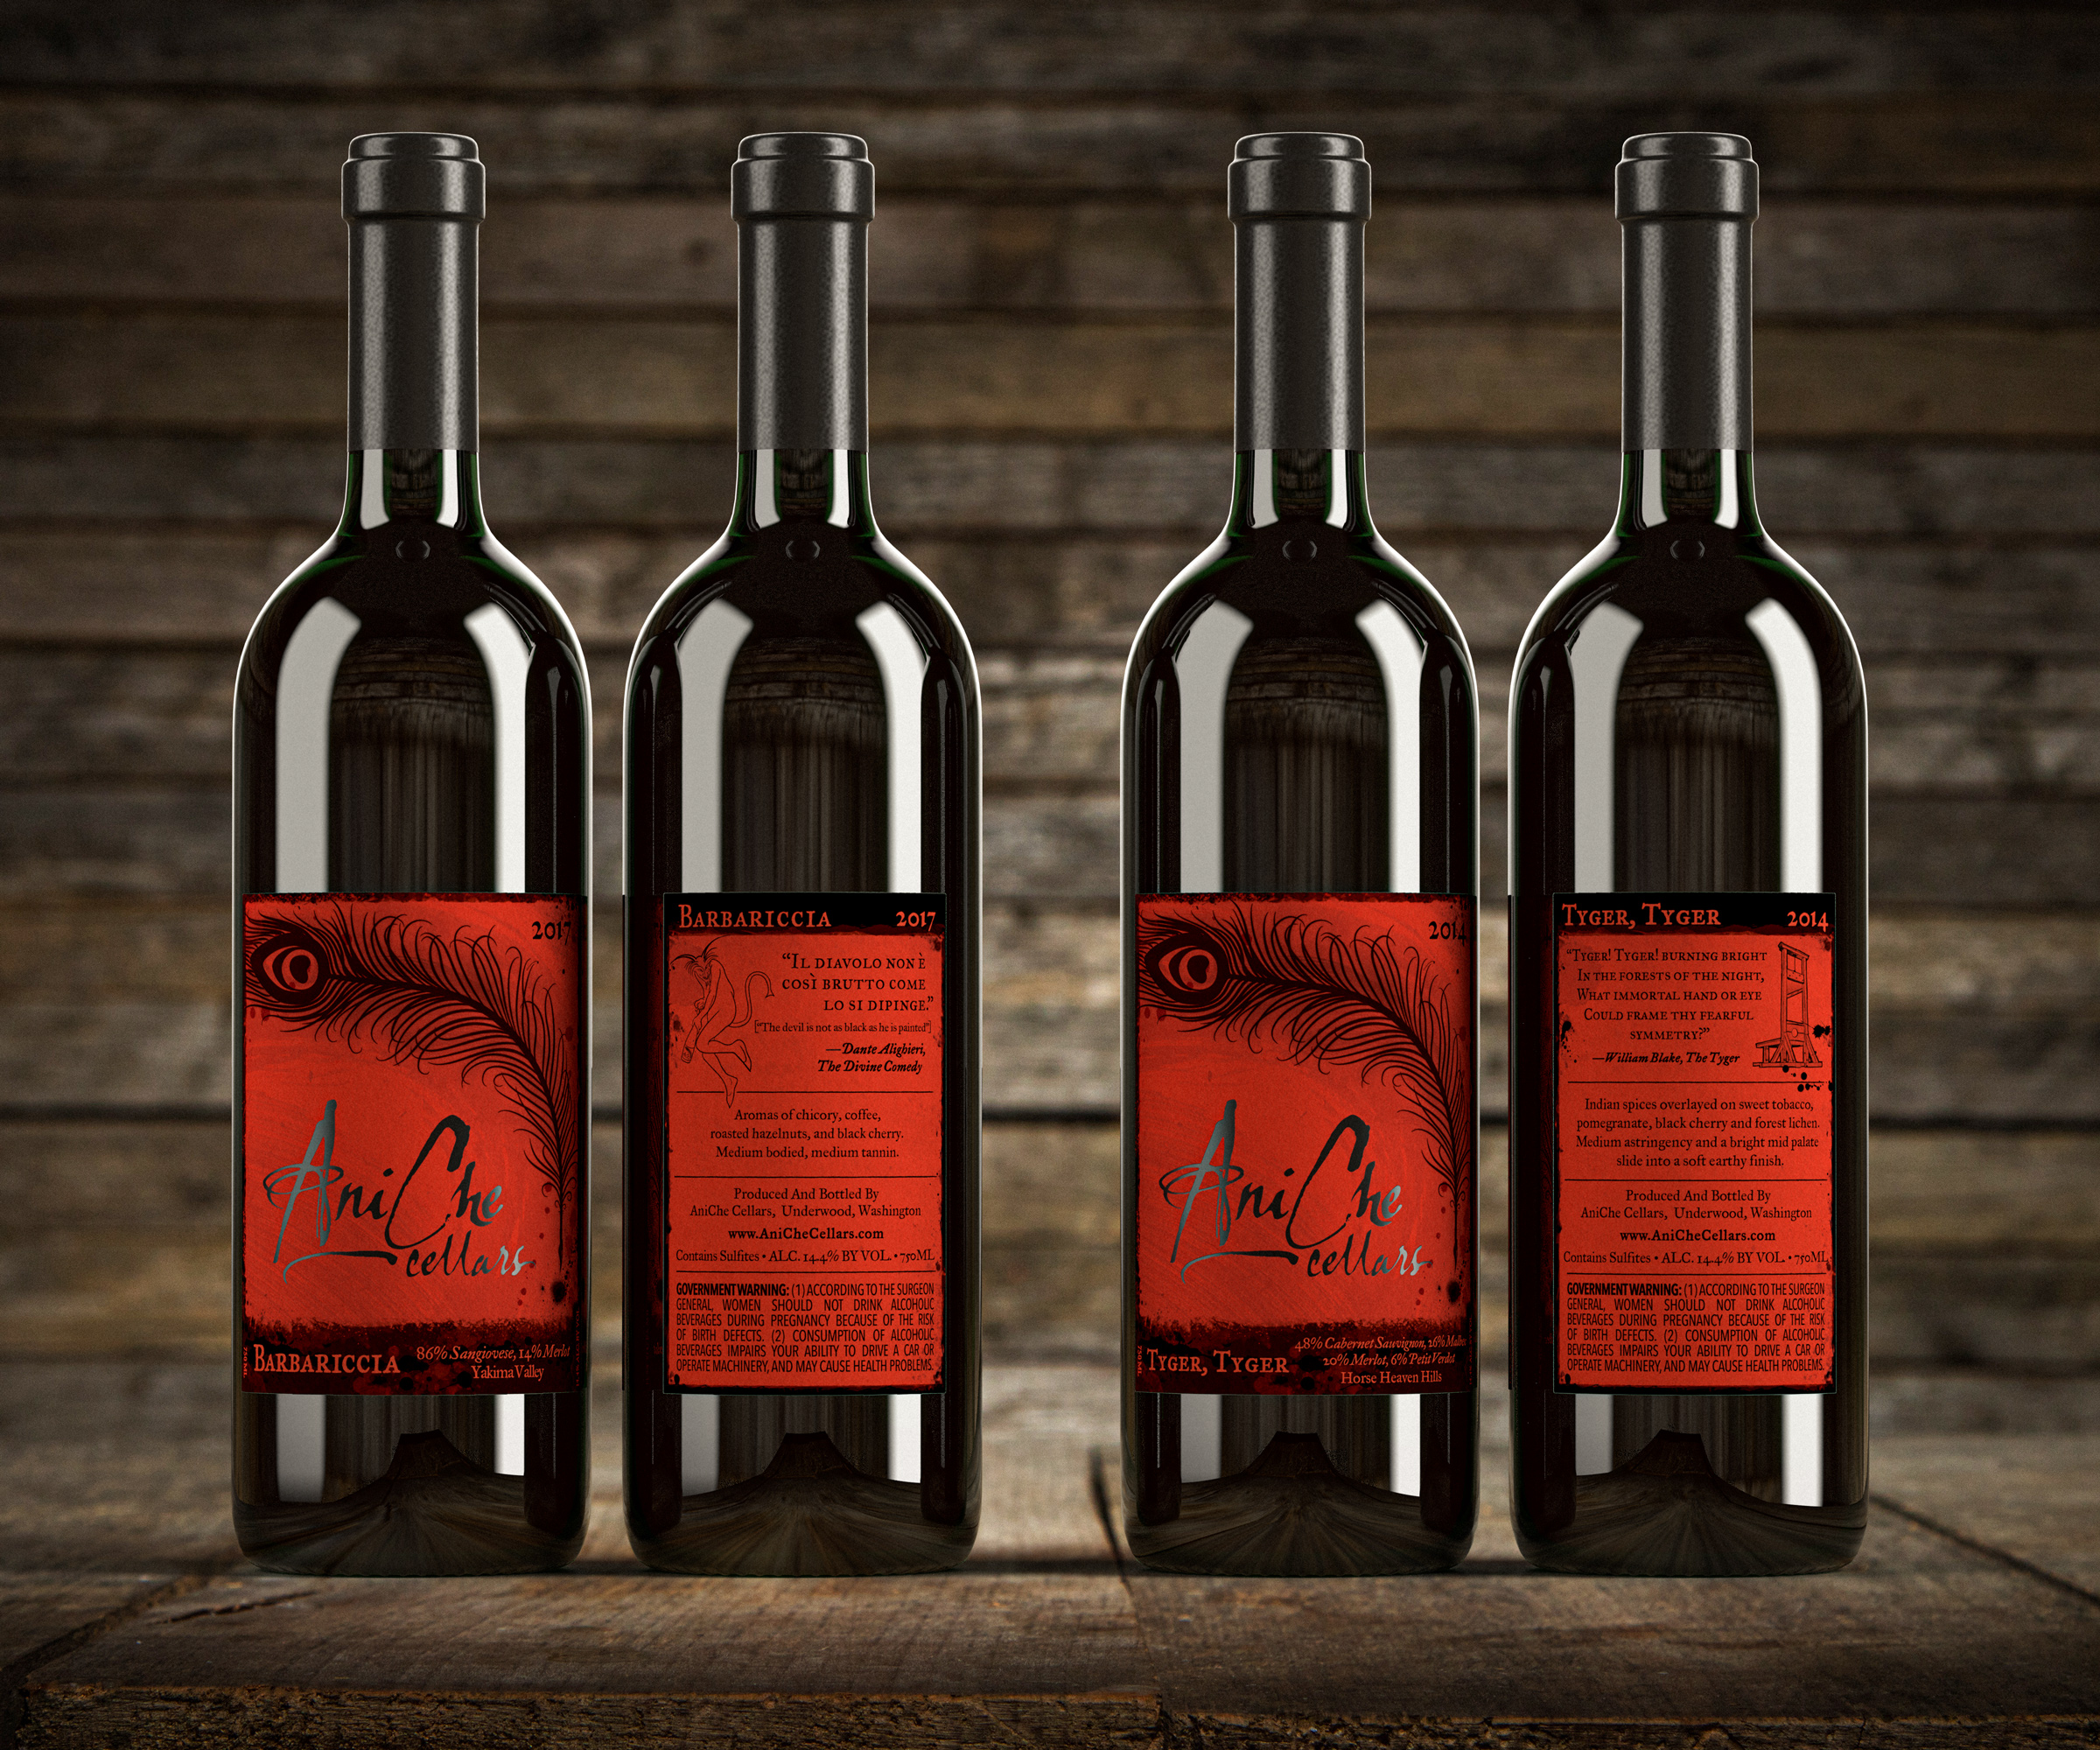 I was approached by AniChe Cellars to to take their infant label to the next level. AniChe (named after the winemakers two children) wanted to retain certain aspects of its fledgling label: ink splotched & smeared, old literary feel of peacock quill pens, the rich red they had been using liberally and old letterpress type setting. I focused on striking shelf appeal, readability and giving the brand and label the kind of character that the defined the author/winemaker.